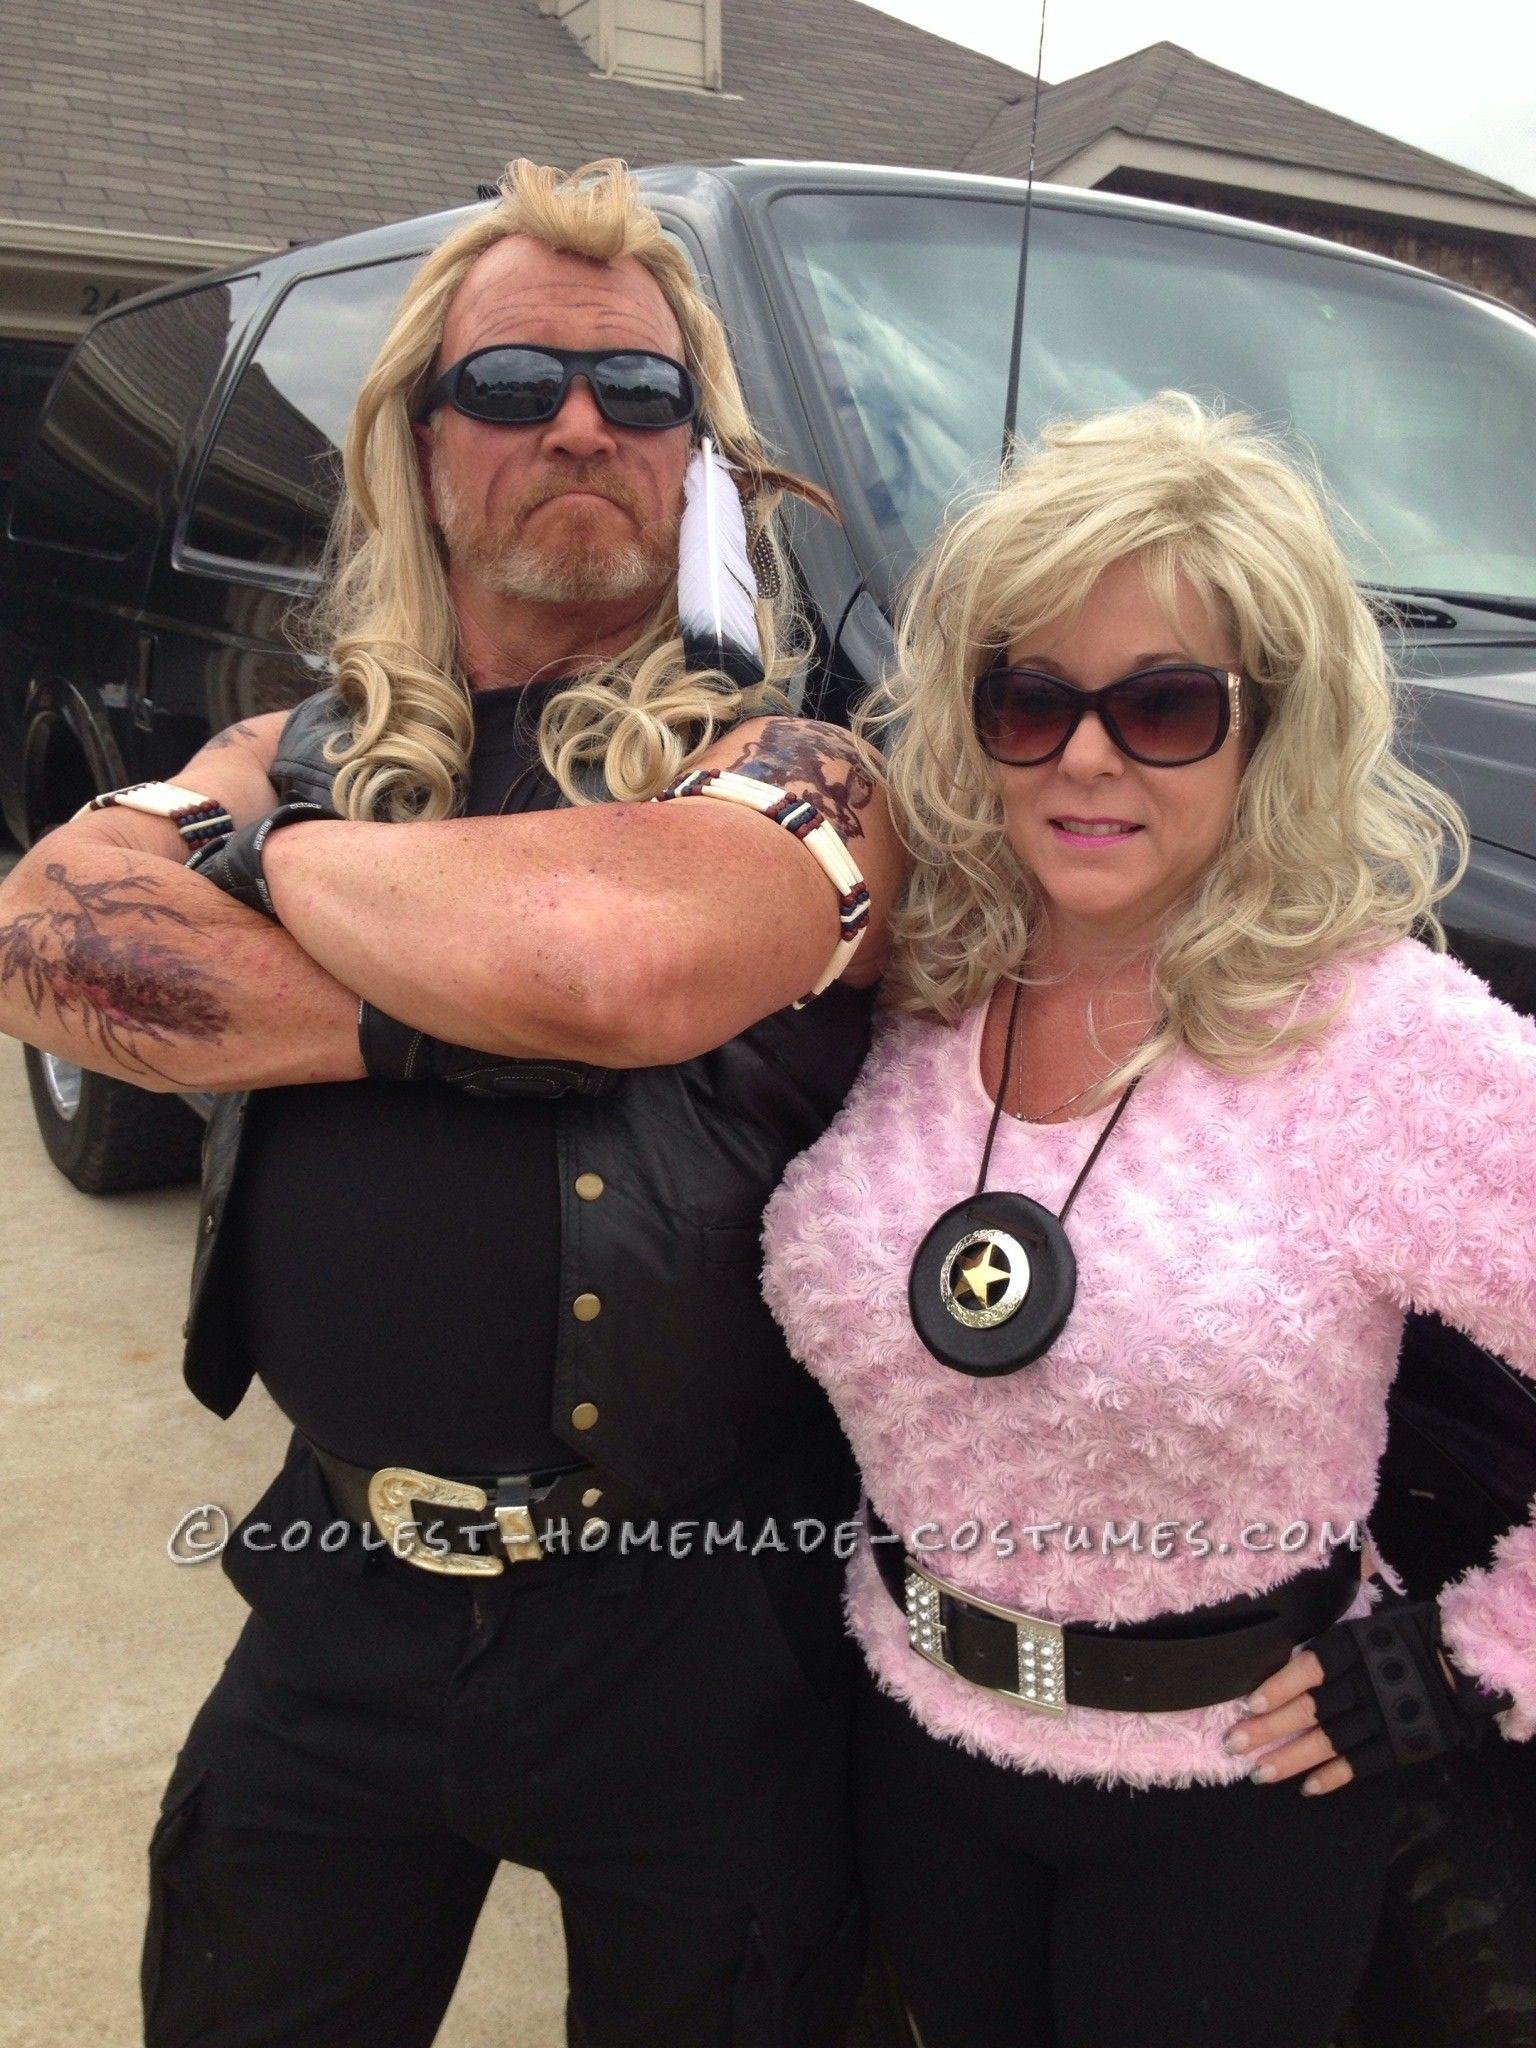 dog and beth do texas halloween couple costume - Jimmy Page Halloween Costume